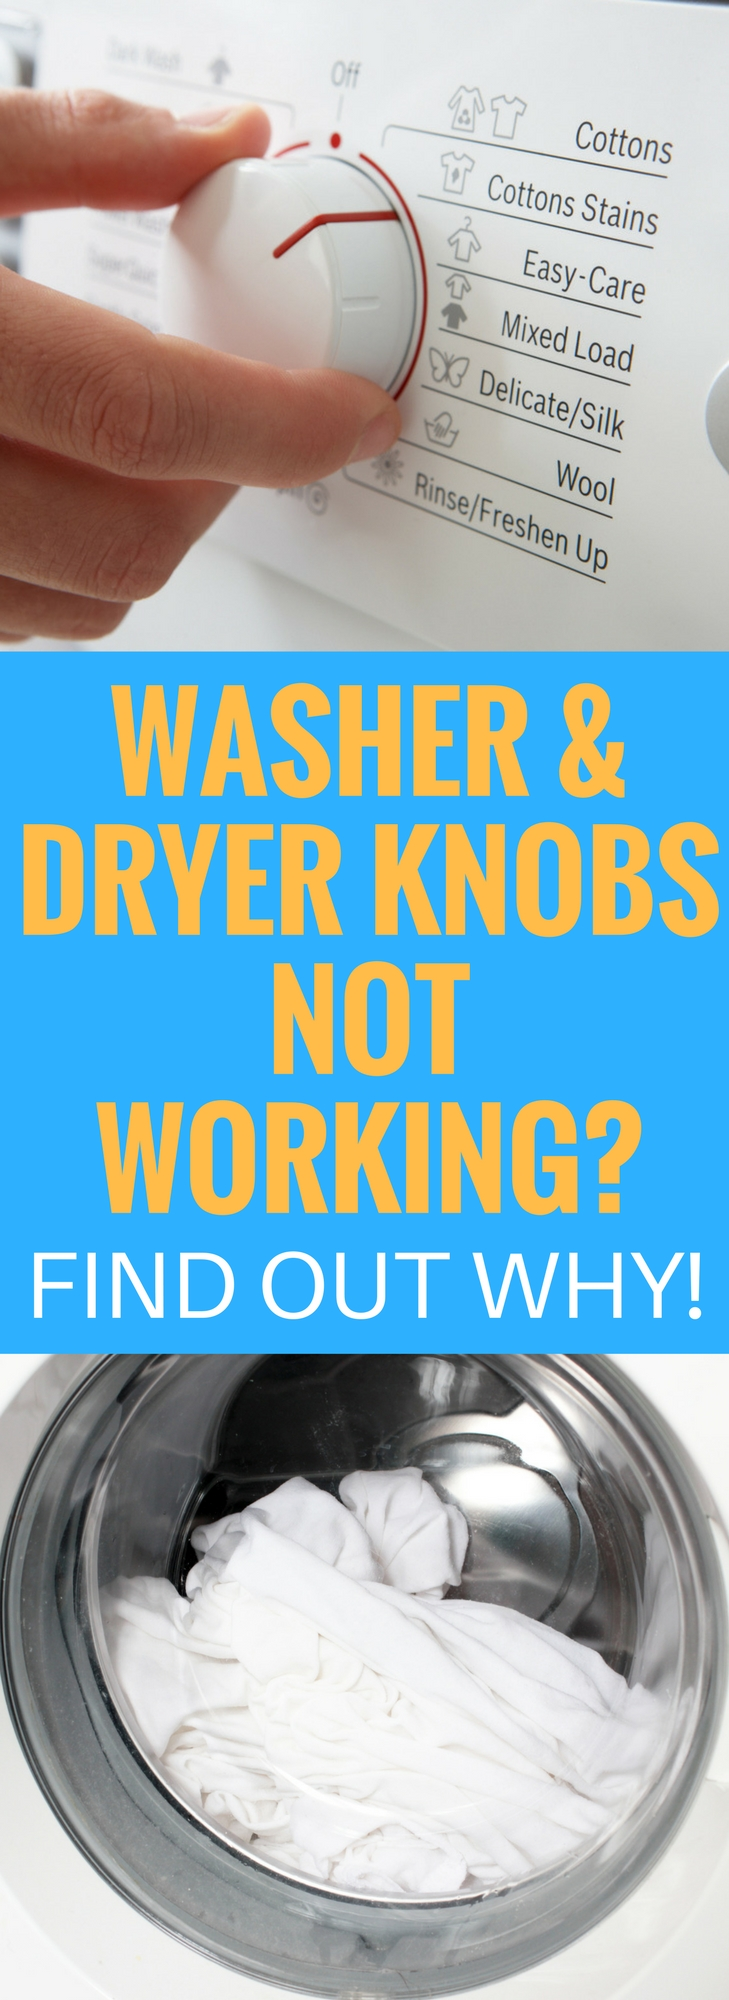 Washer and Dryer Knobs Not Working?  Here is an easy fix!